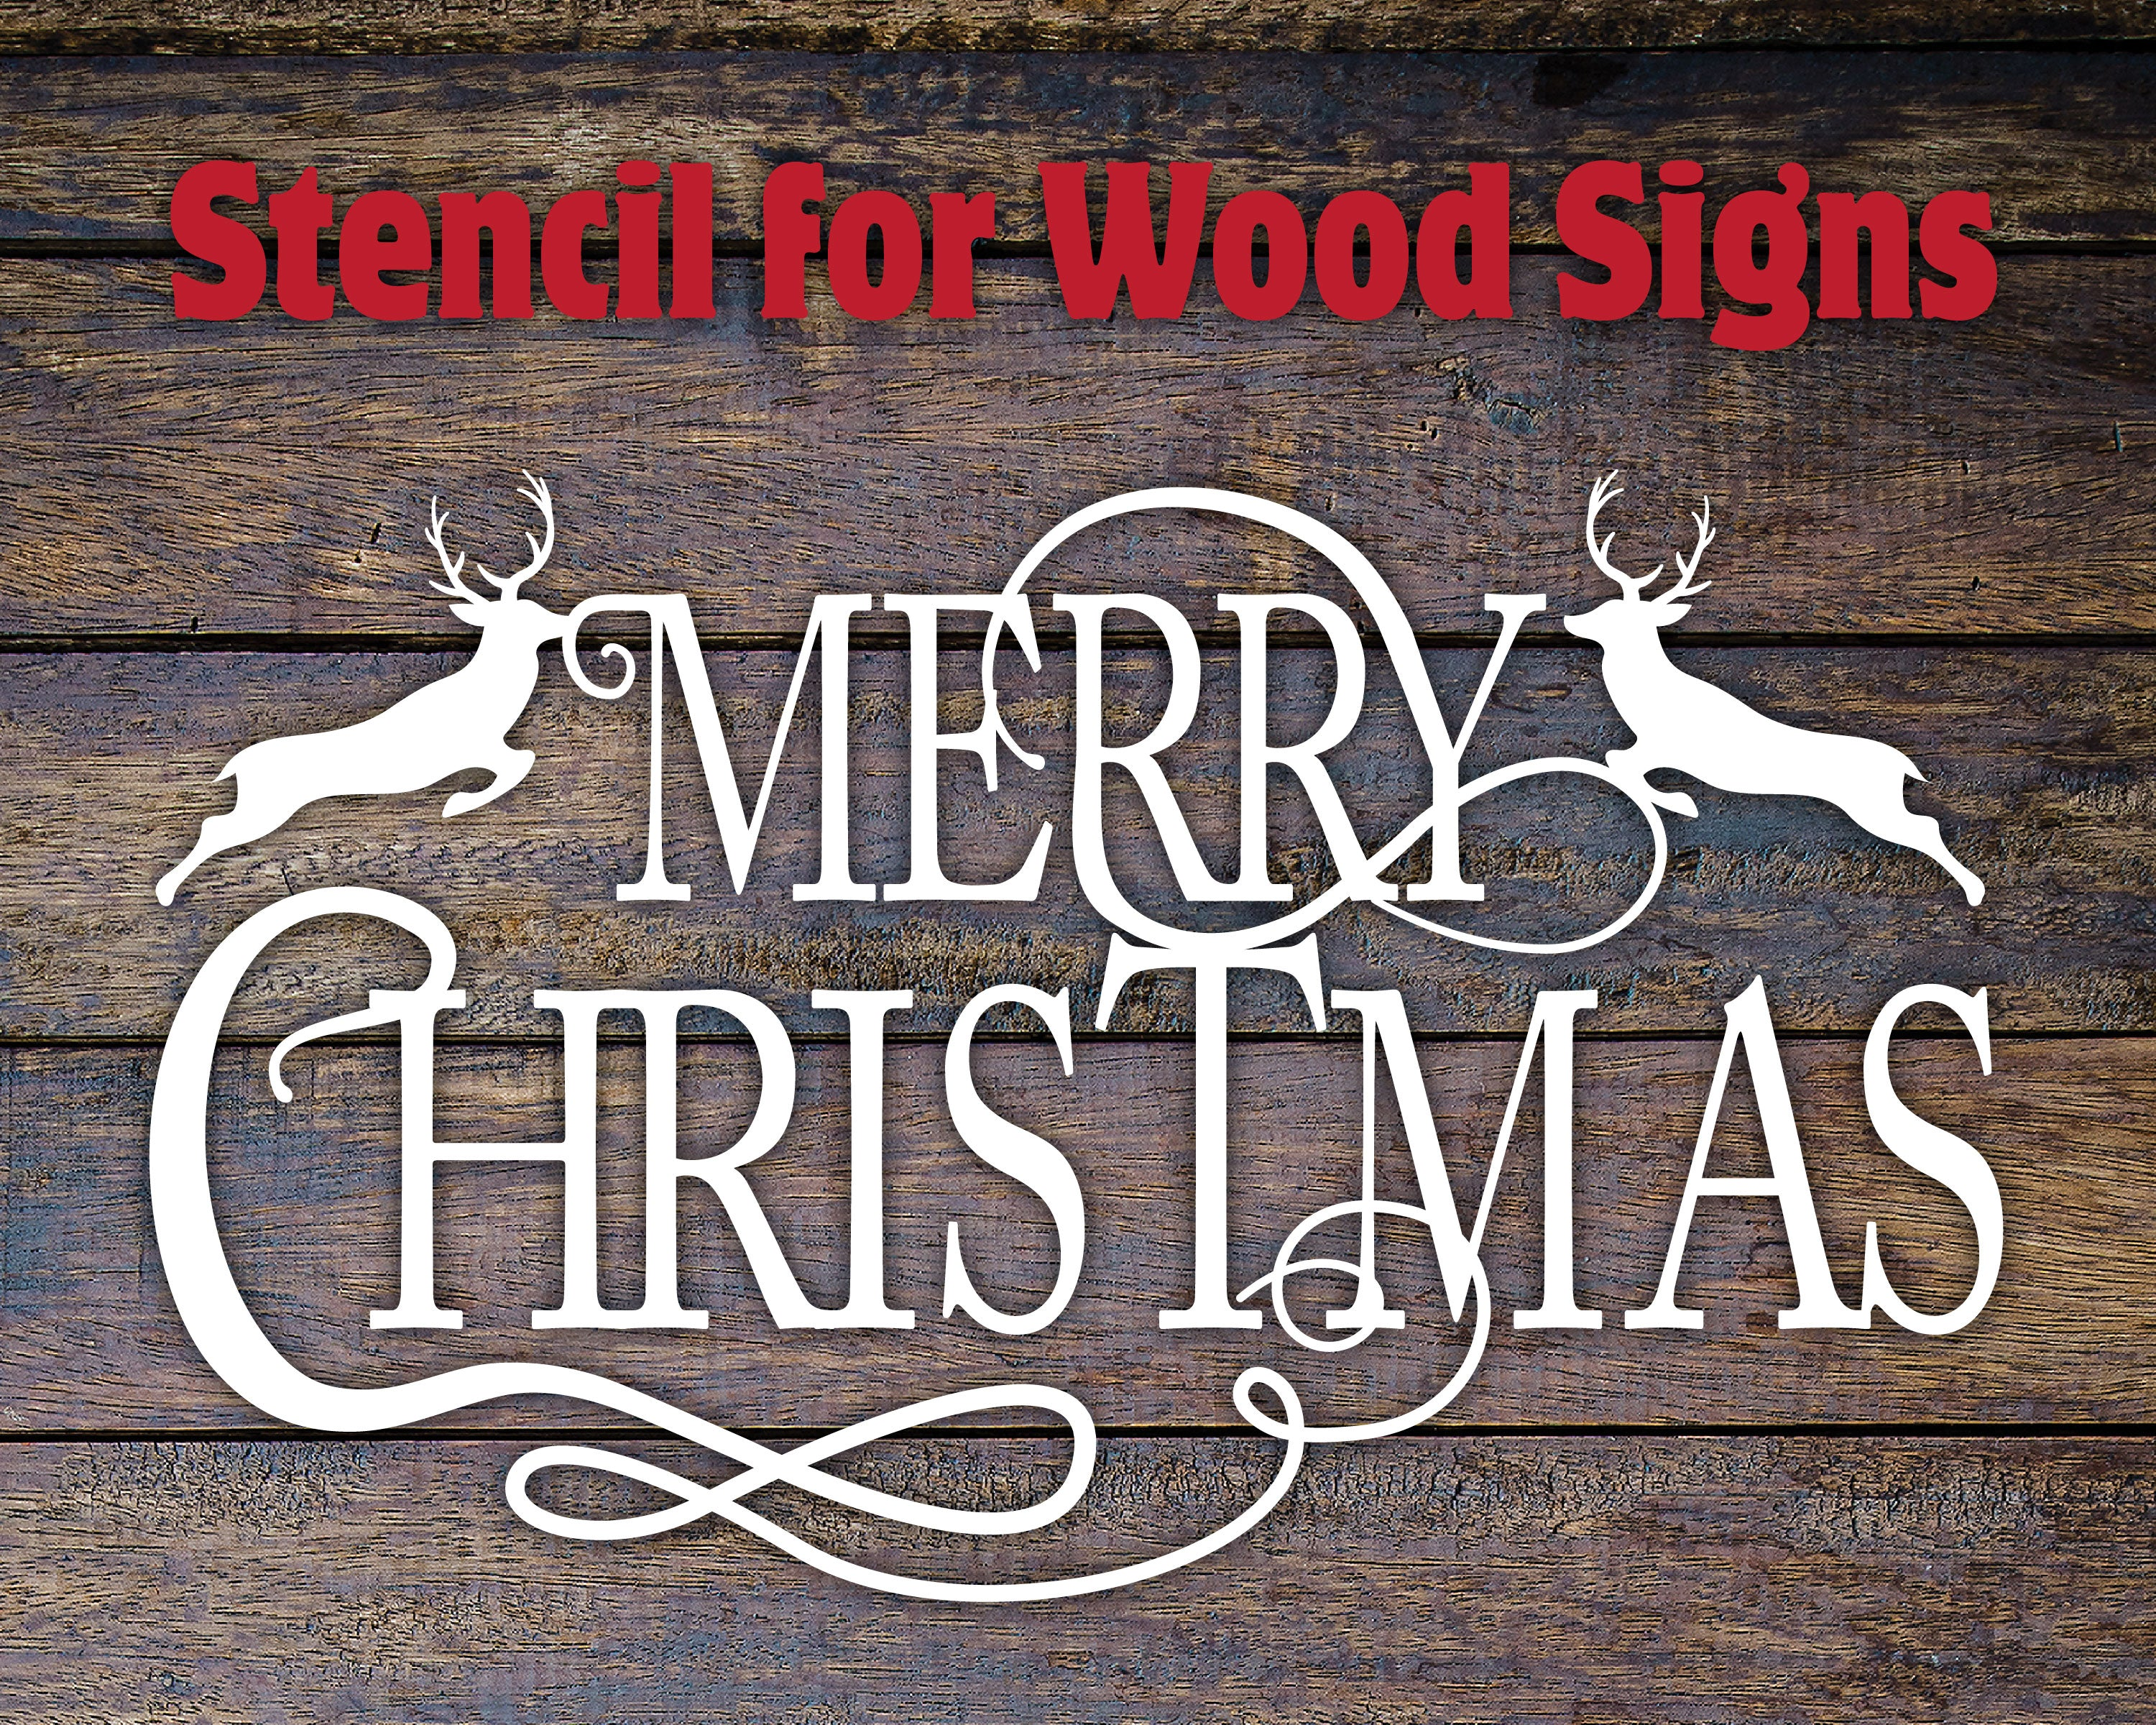 Merry Christmas Stencil for Wood Sign Painting - One Time Use!